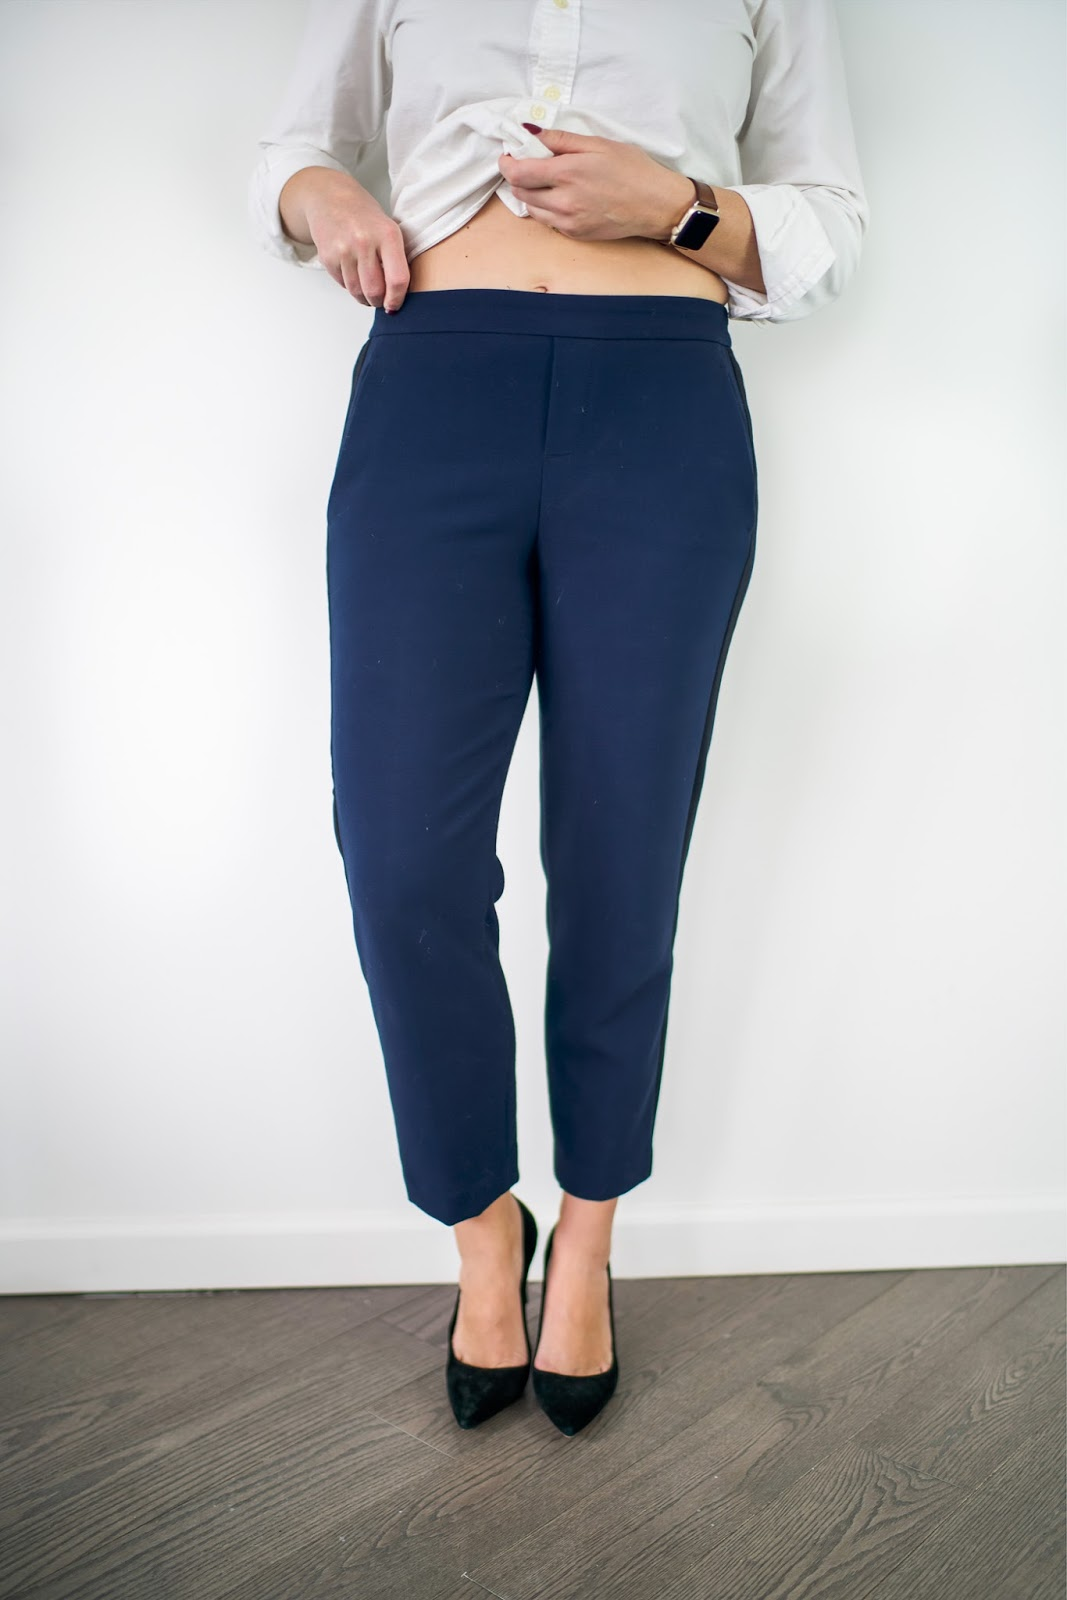 Comfy Work Pants by popular New York style blogger Covering the Bases